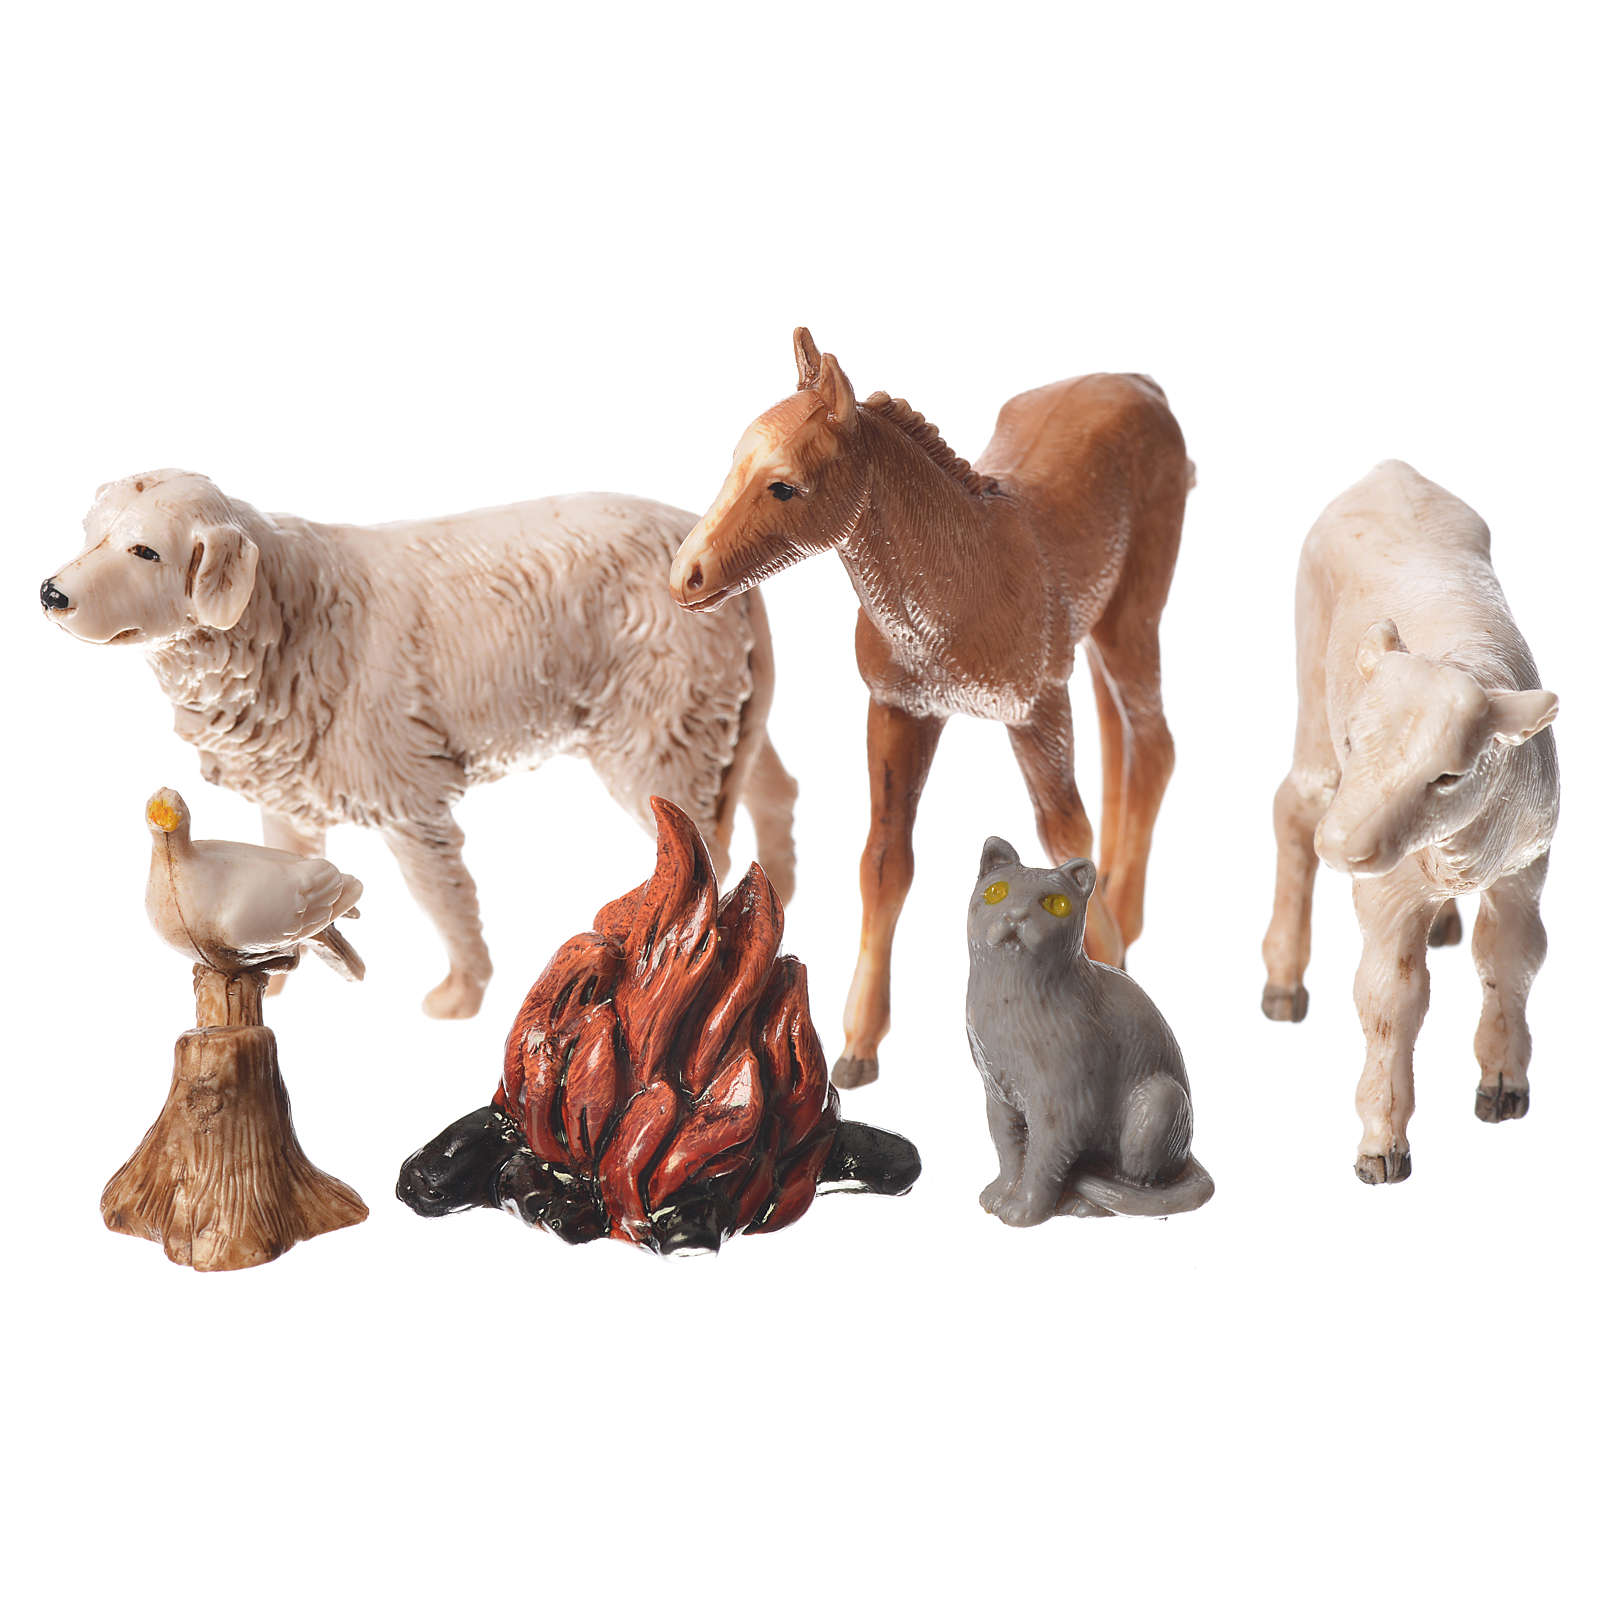 Nativity Scene animals and wood fire by Moranduzzo 10cm, 5 pieces 4